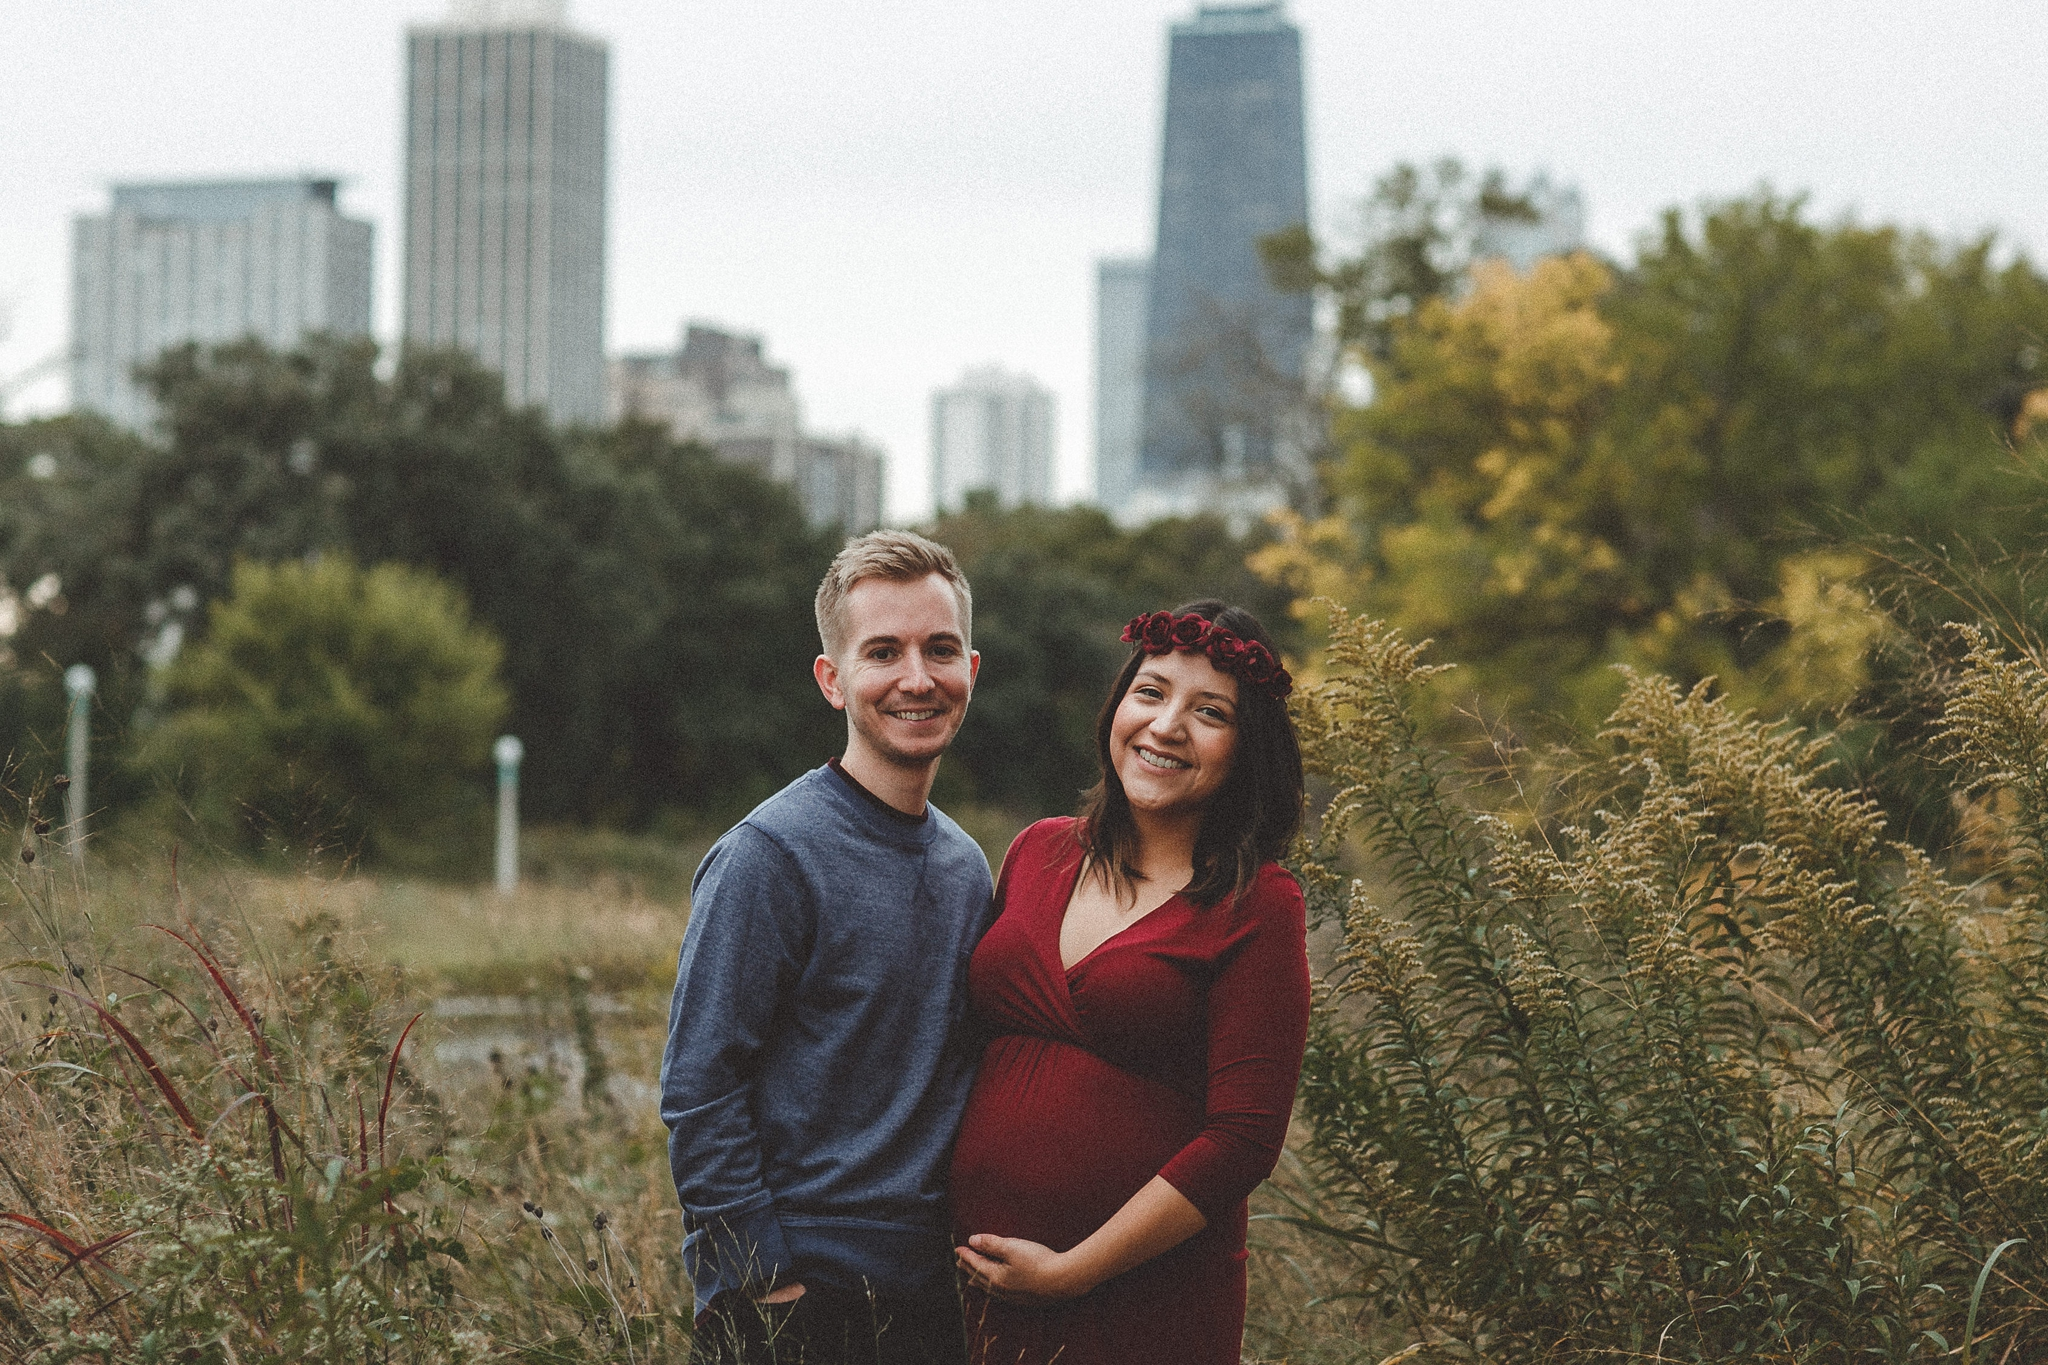 chicago_lincoln_park_family_maternity_photograper_0009.jpg